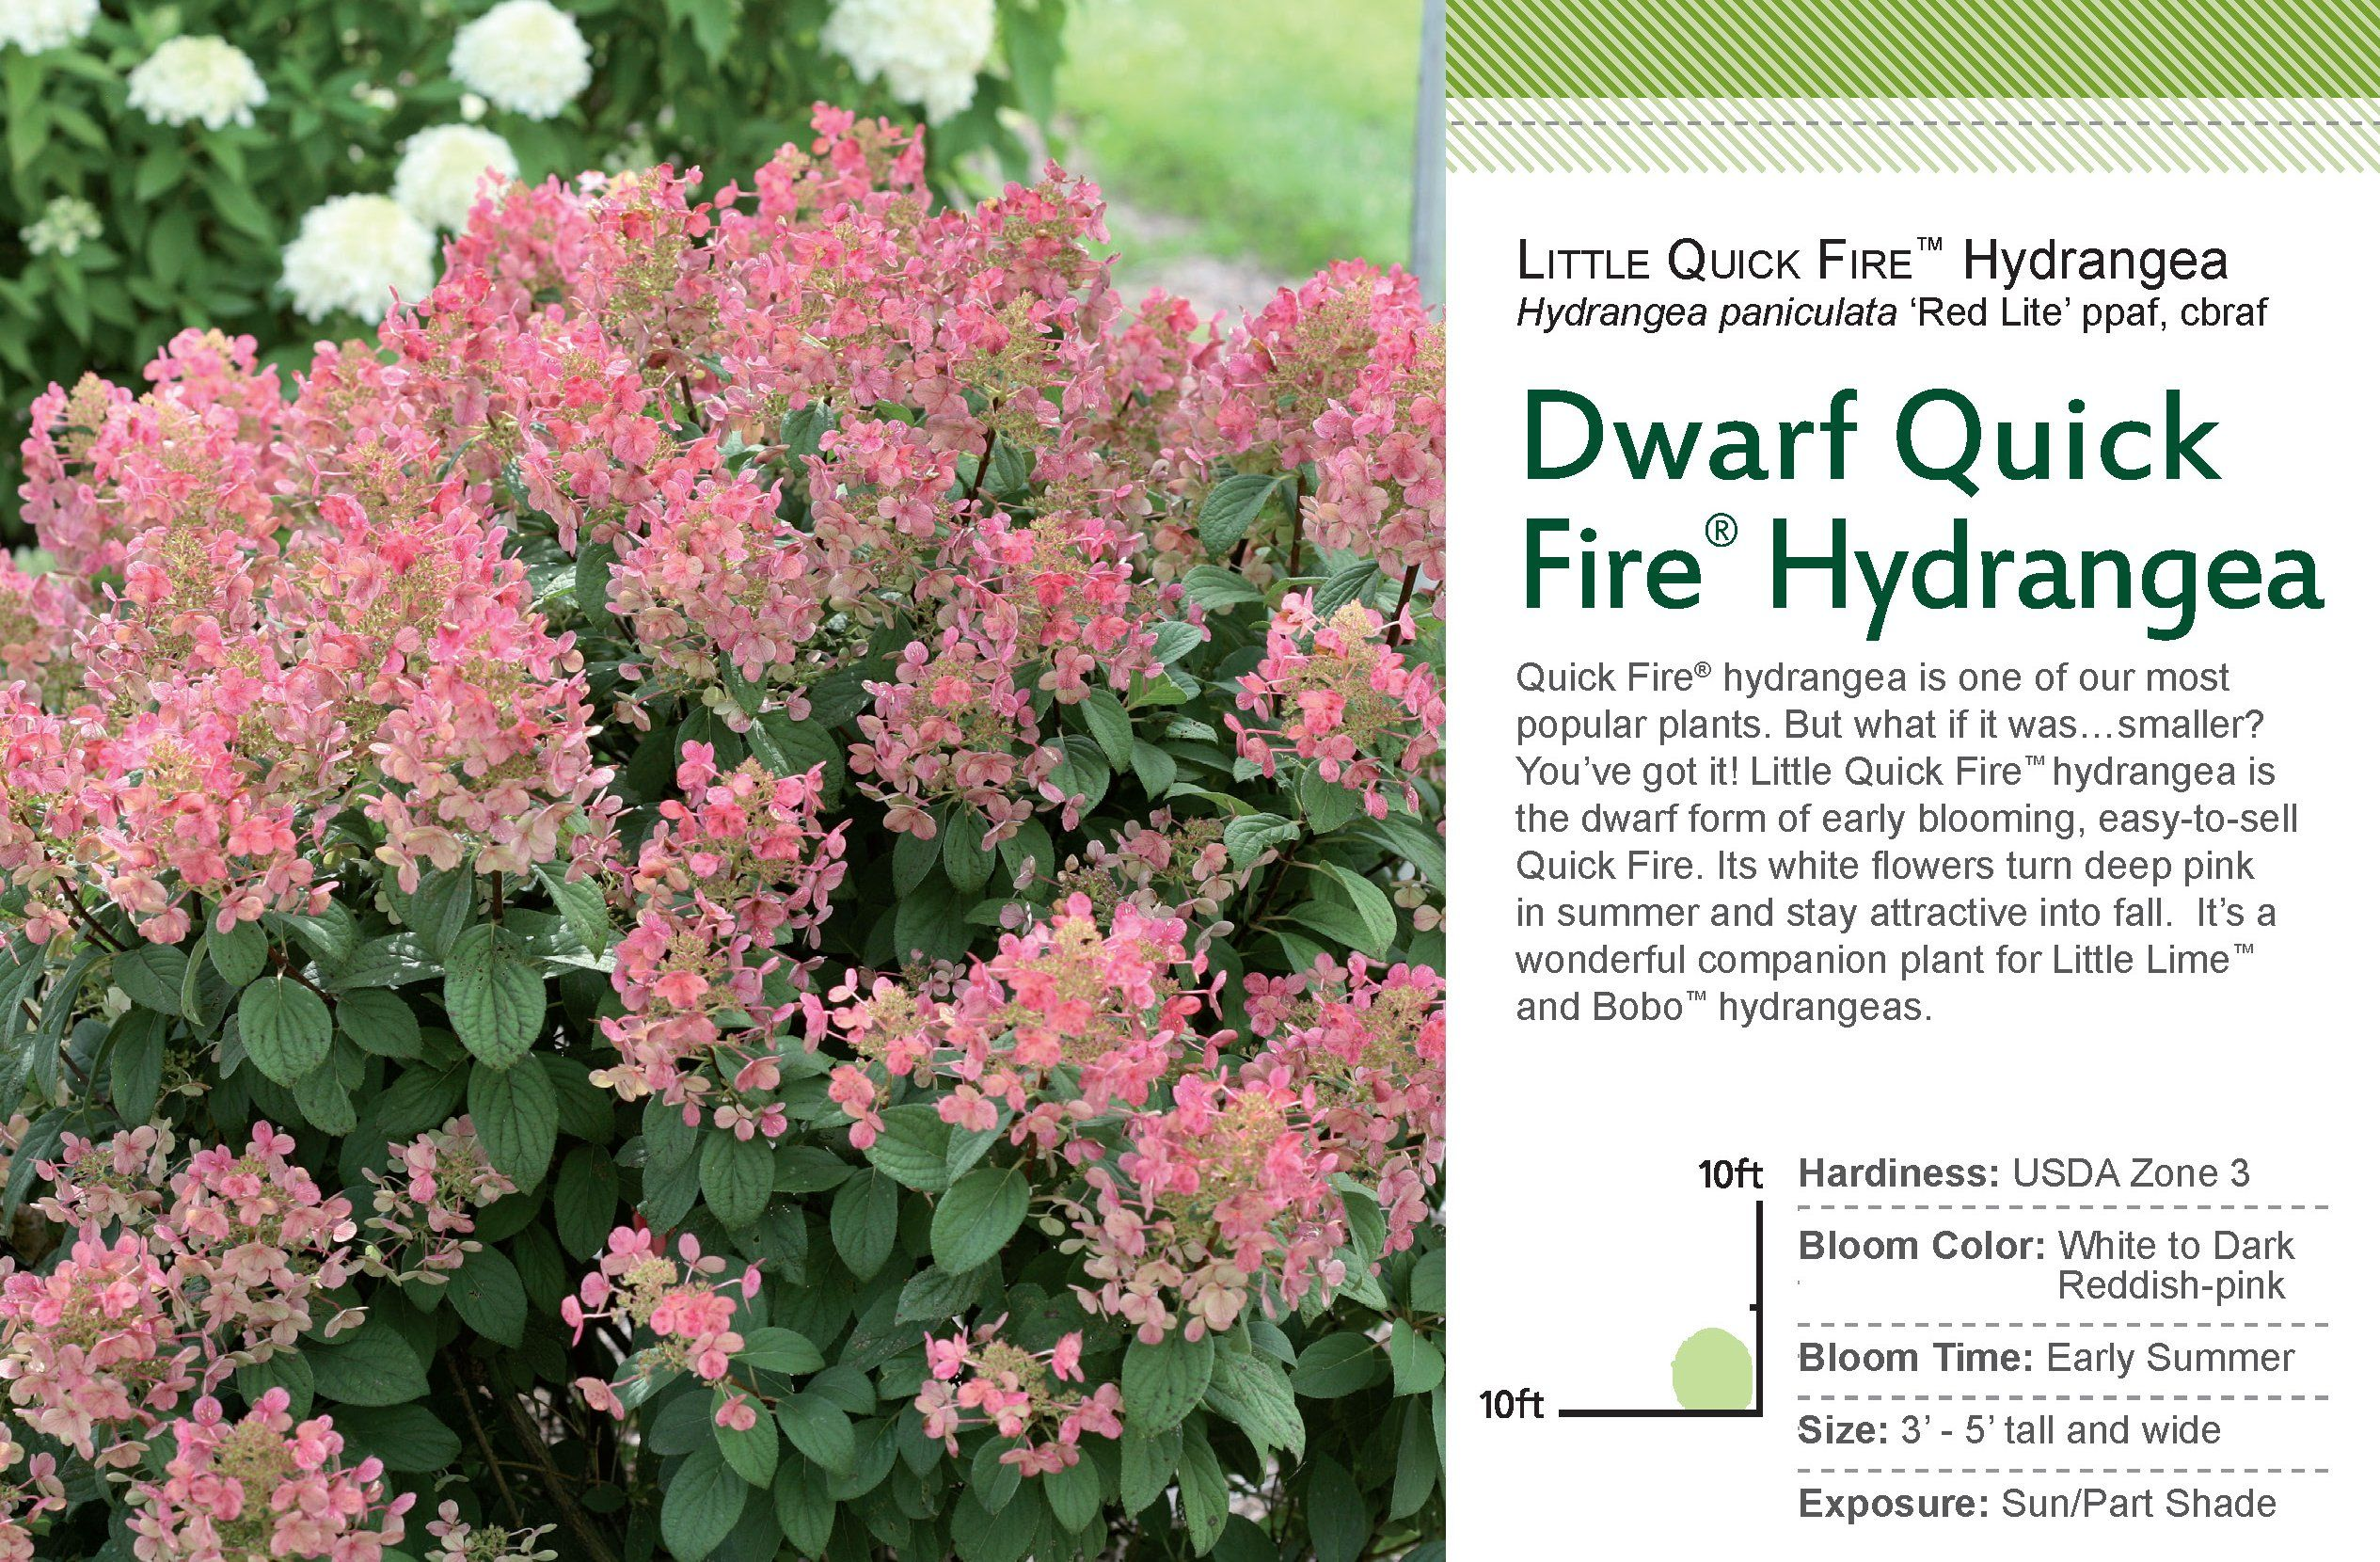 New Hydrangea Little Quickfire Is Perfect For Todays Gardens What